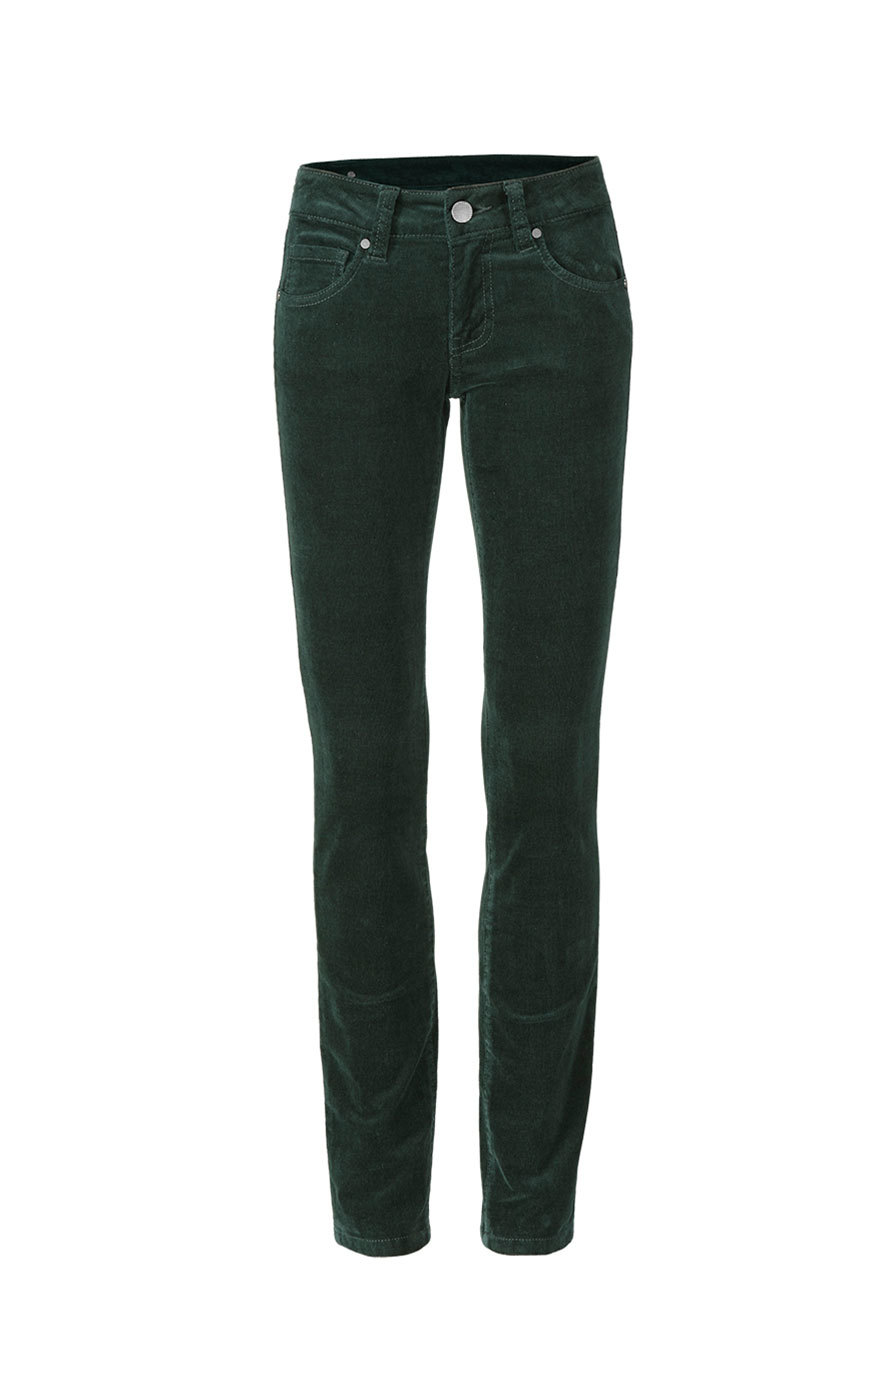 lowest discount cheap price new arrivals Skinny Cord | cabi clothing